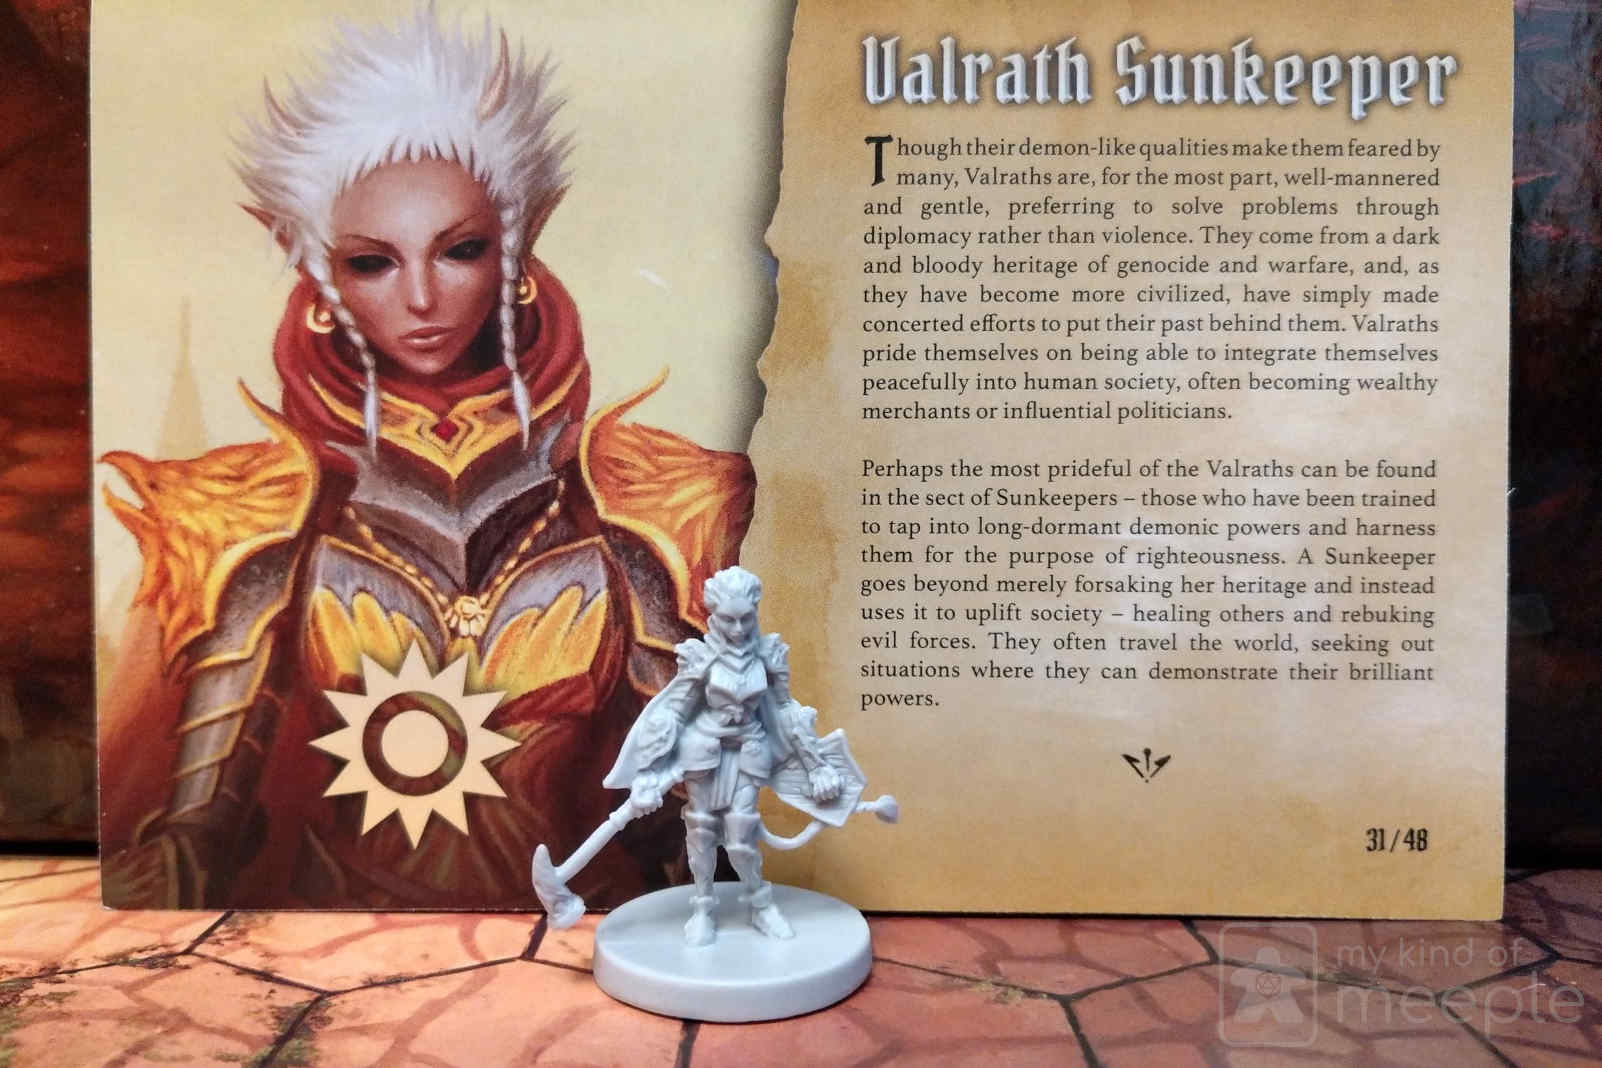 Gloomhaven Sunkeeper locked class miniature and character board